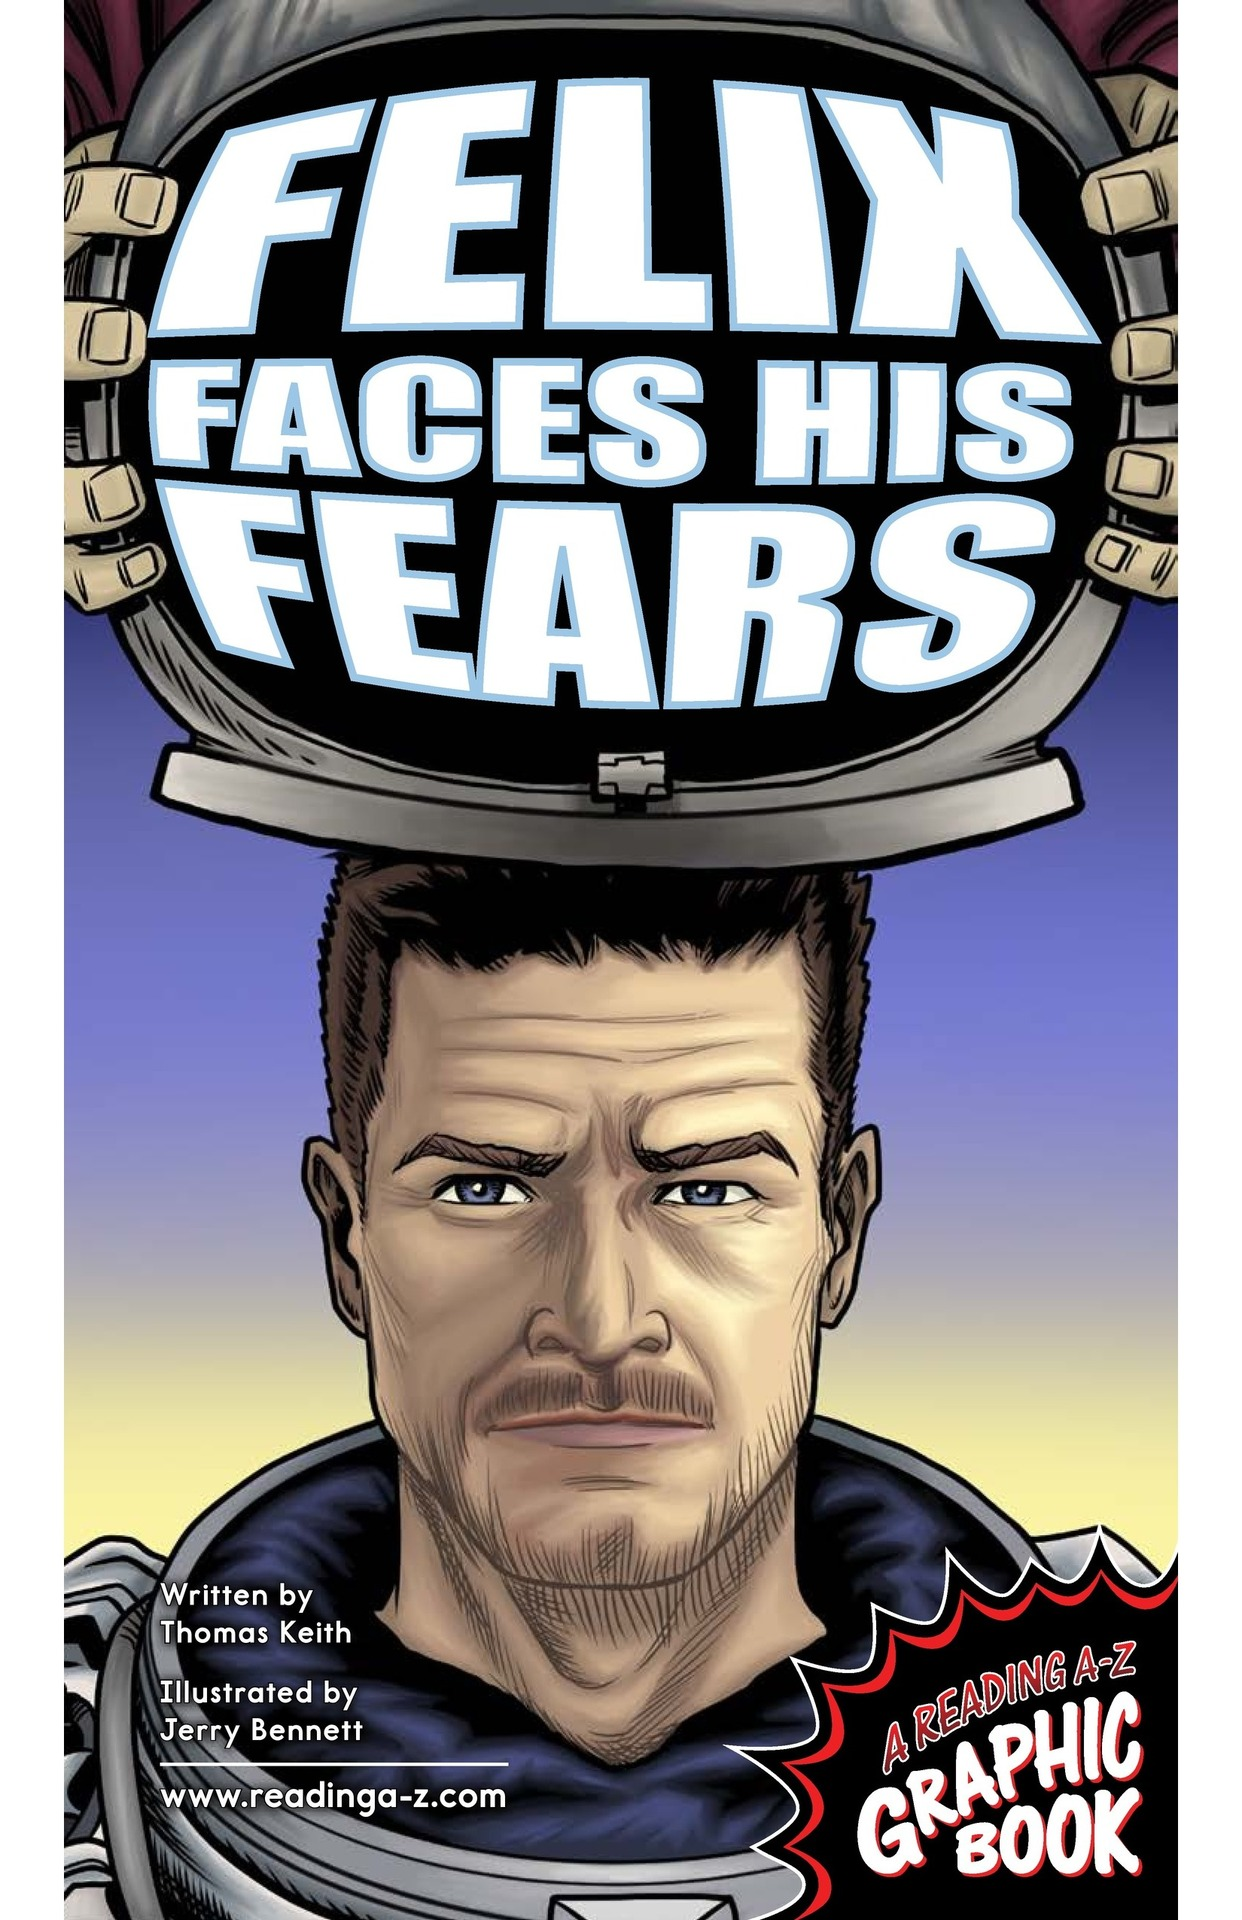 Book Preview For Felix Faces His Fears Page 1